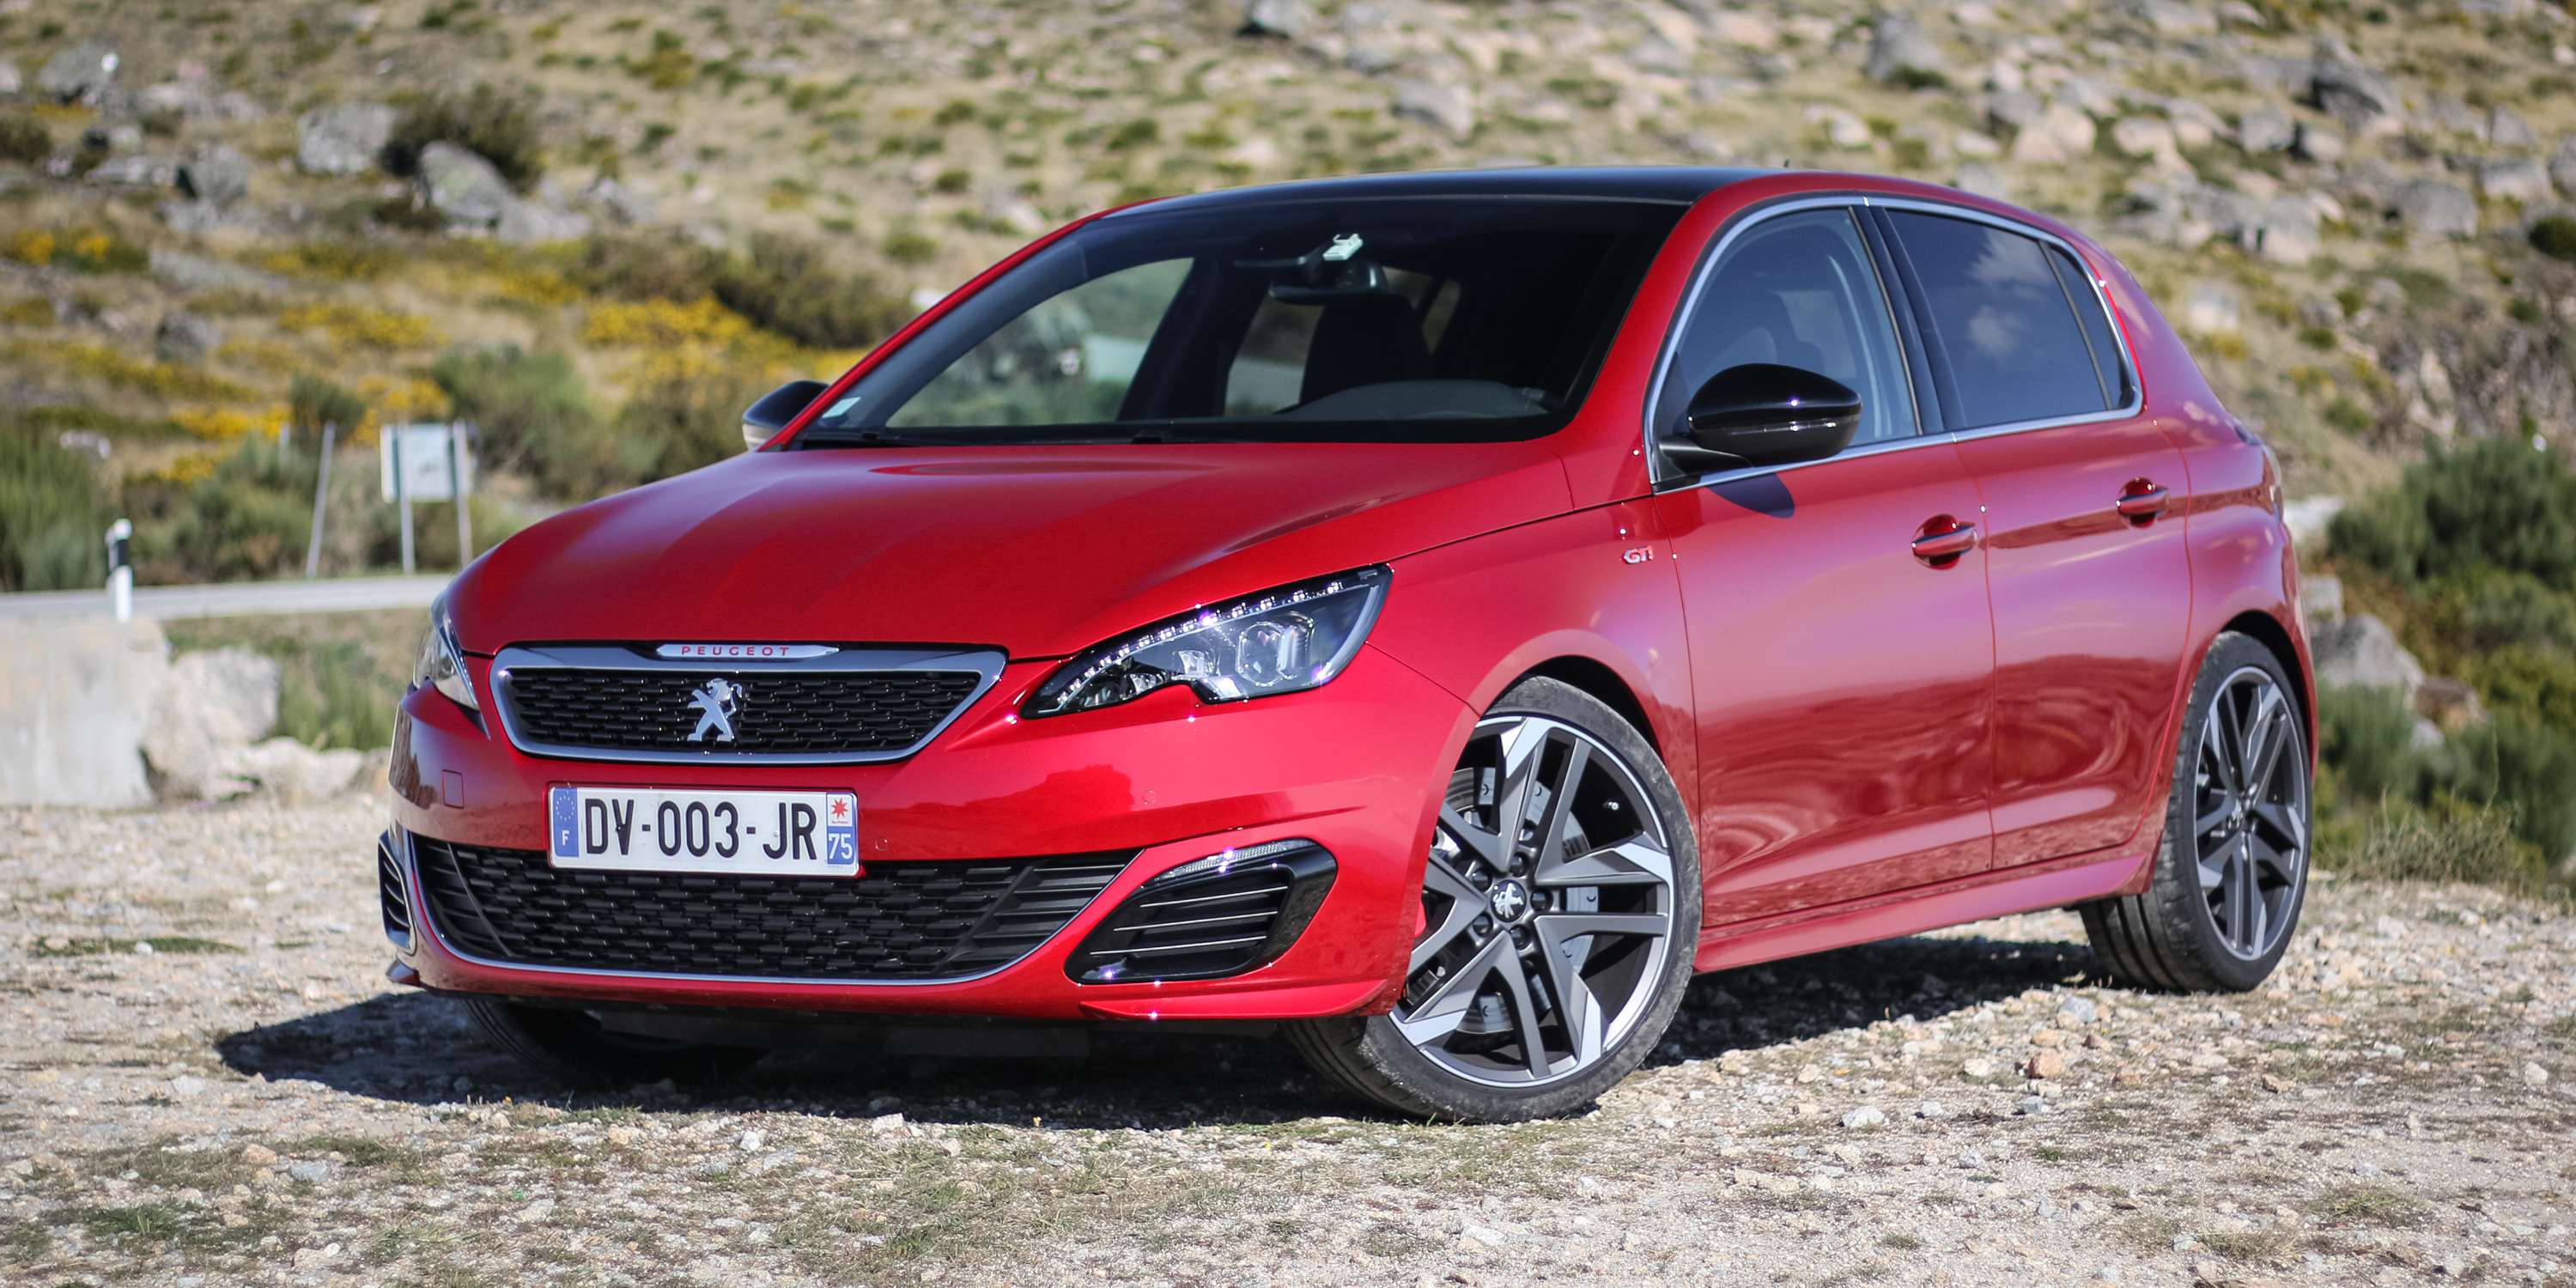 Preview 2016 Peugeot 308 GTi 270